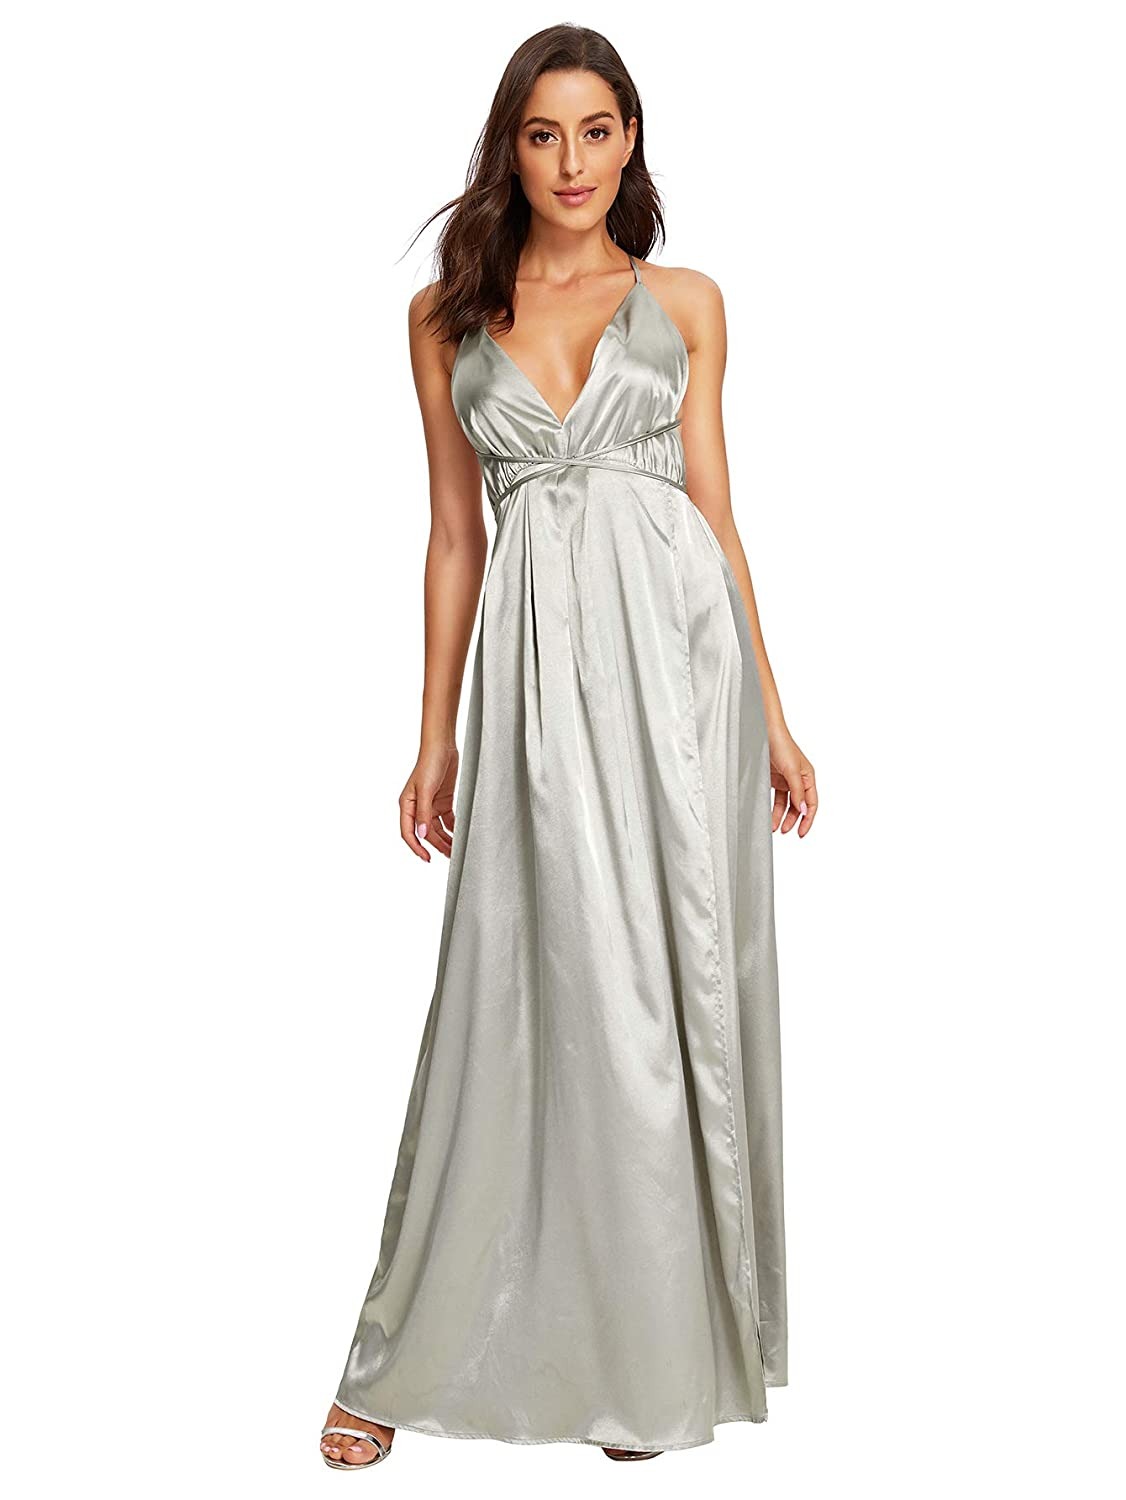 cb194e8897 SheIn Women's Sexy Satin Deep V Neck Backless Maxi Party Evening Dress at  Amazon Women's Clothing store: